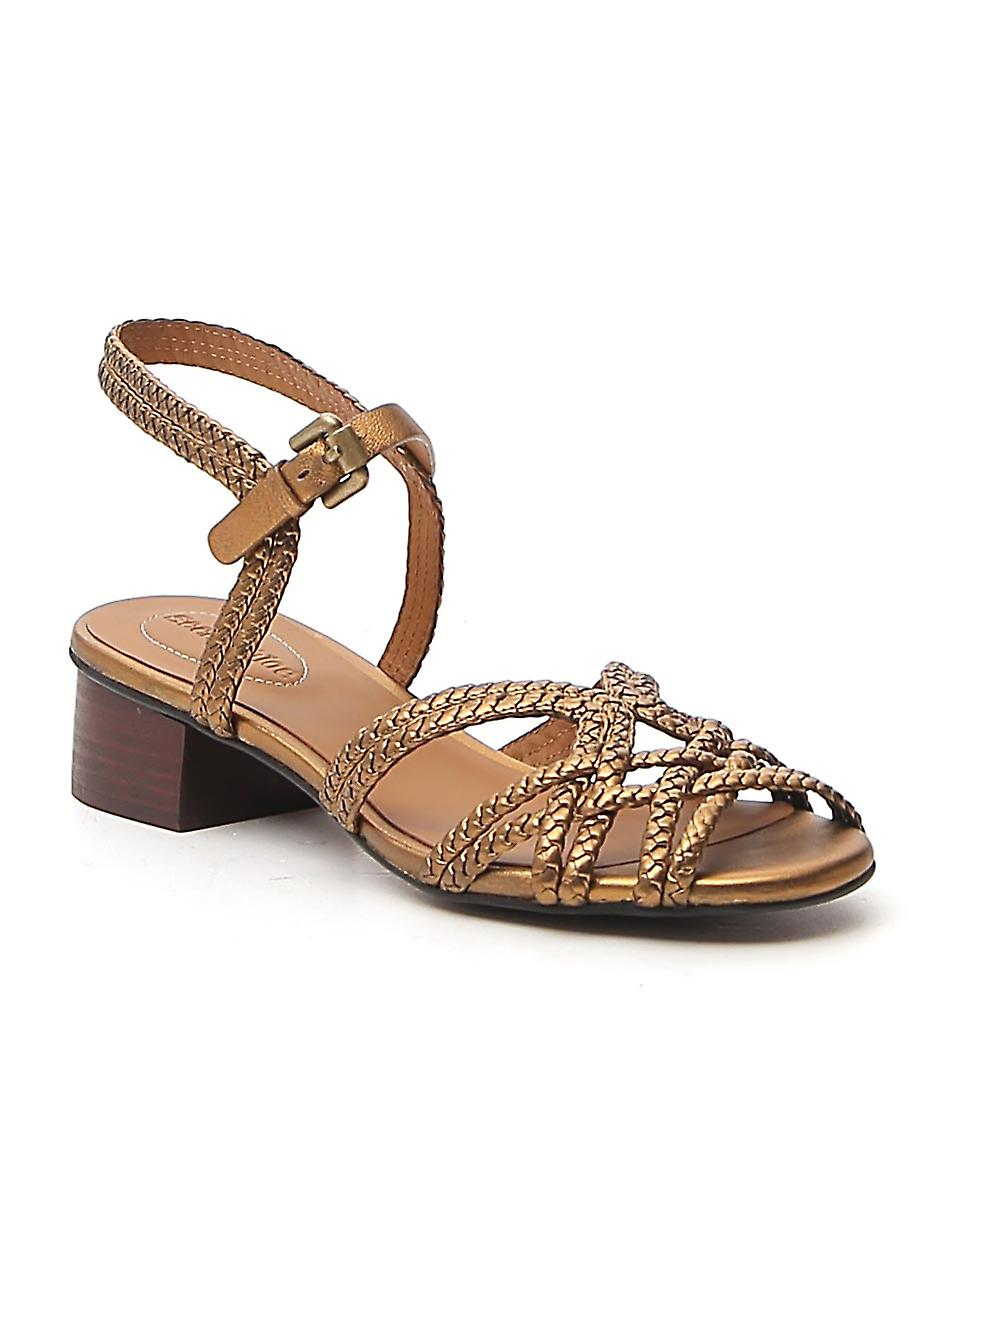 See By Chloé Sb34161a11242087 Women's Bronze Leather Sandals